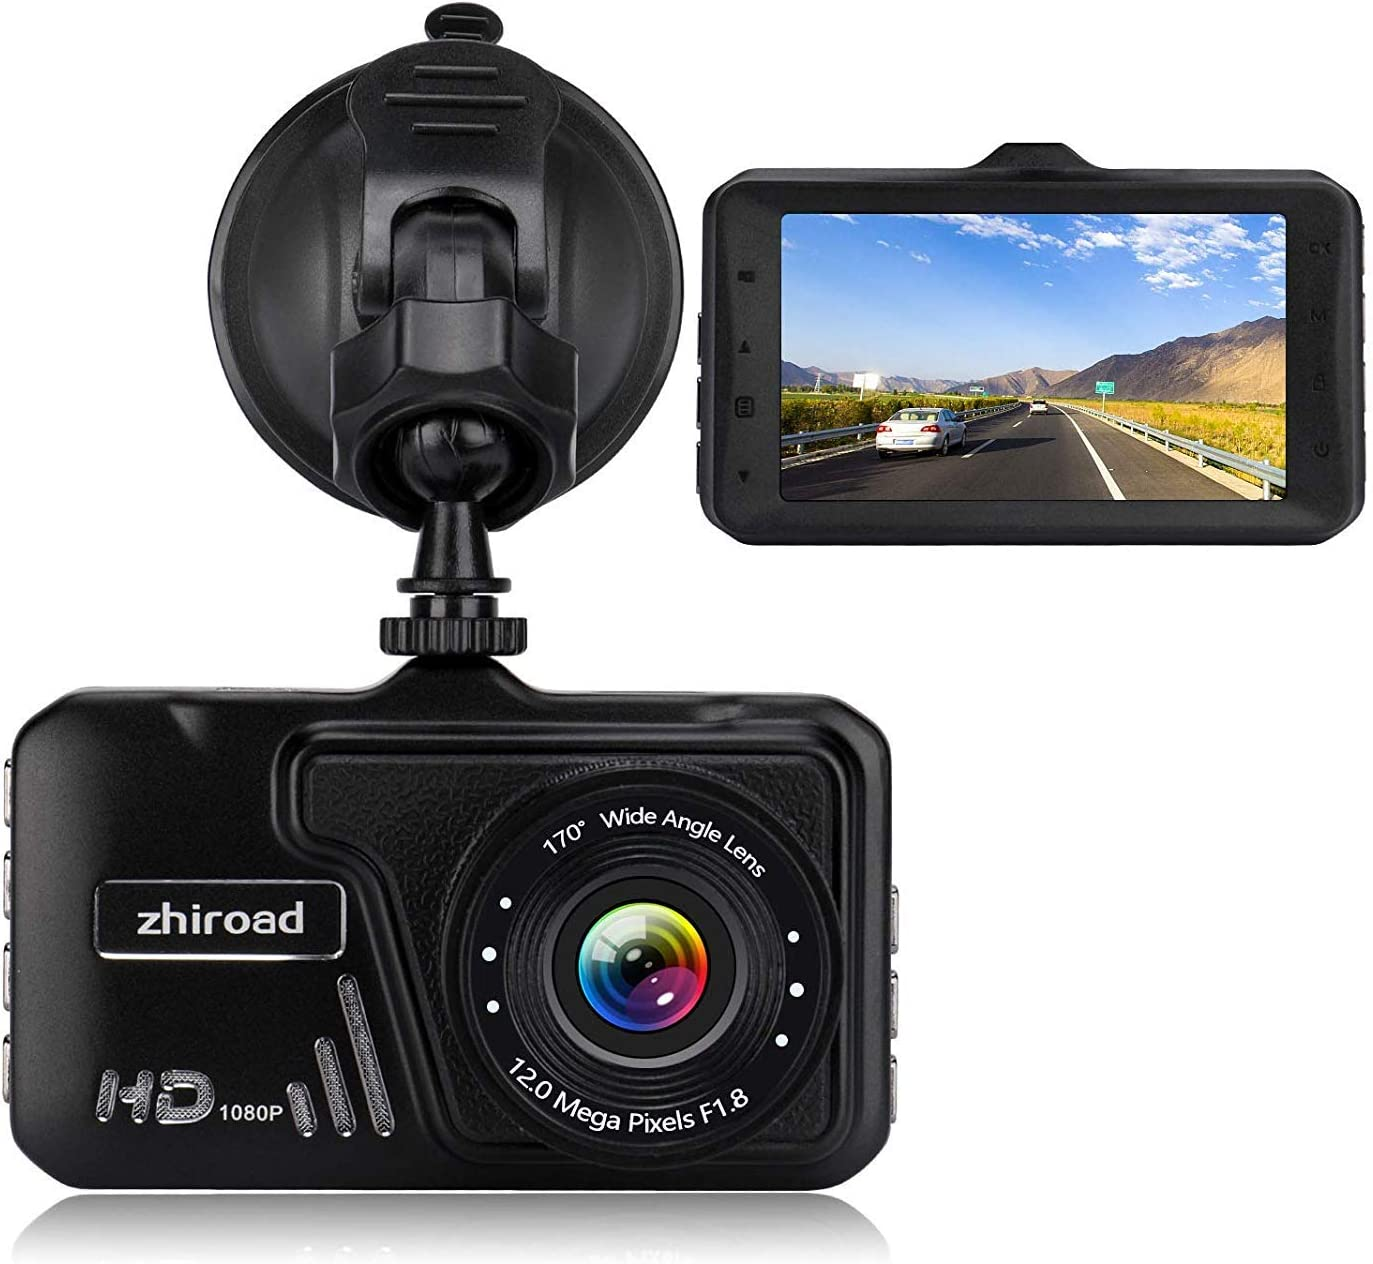 Upgraded Dash Cam 1080P Full HD Dashboard Camera Recorder with High Sensitive G-sensor 6 IR LED Night Vision,Loop Recording,Motion Detection,Parking Monitor